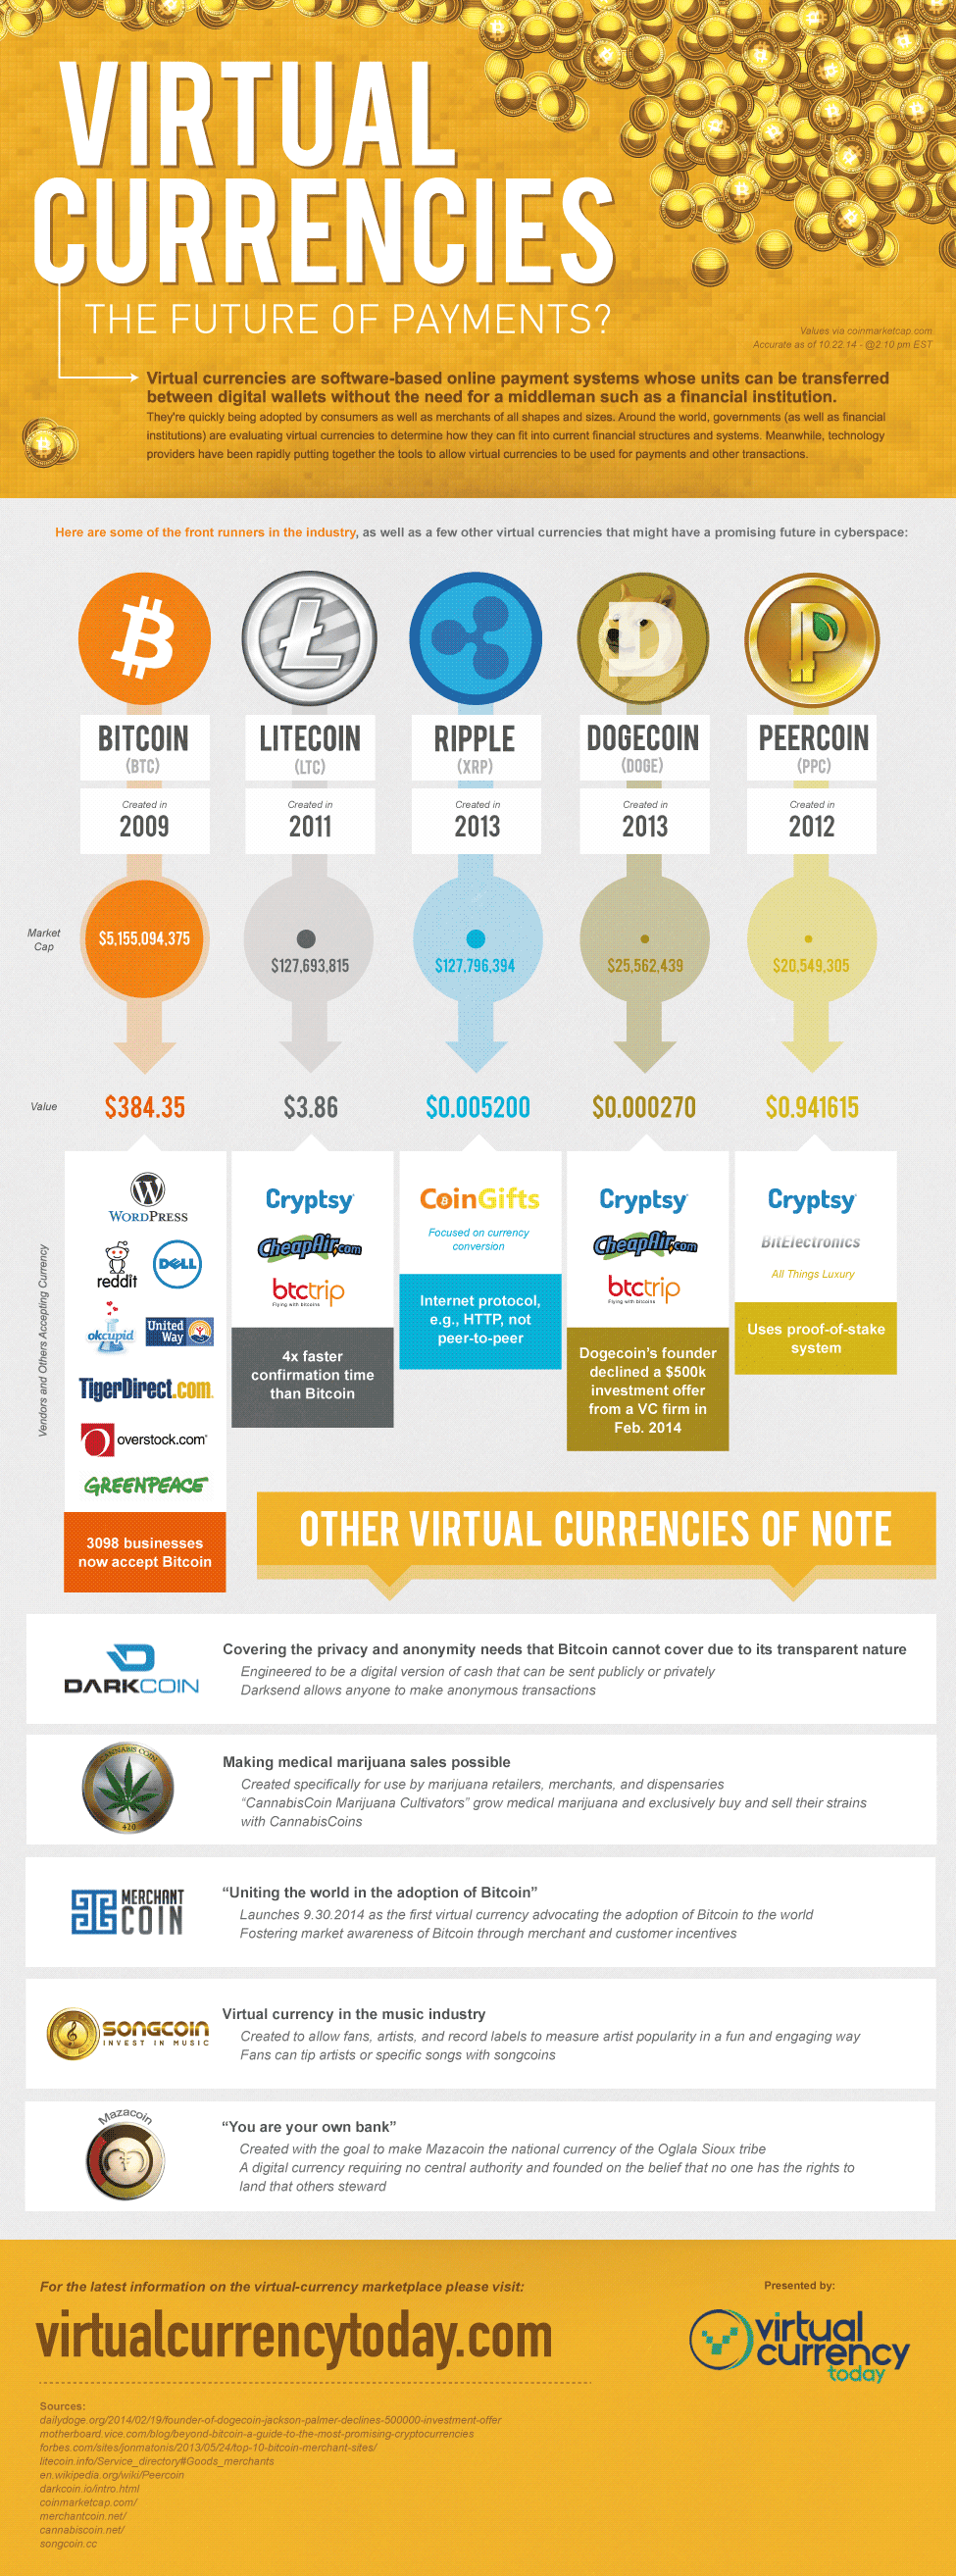 Infographic: Virtual Currencies The Future of Payments?